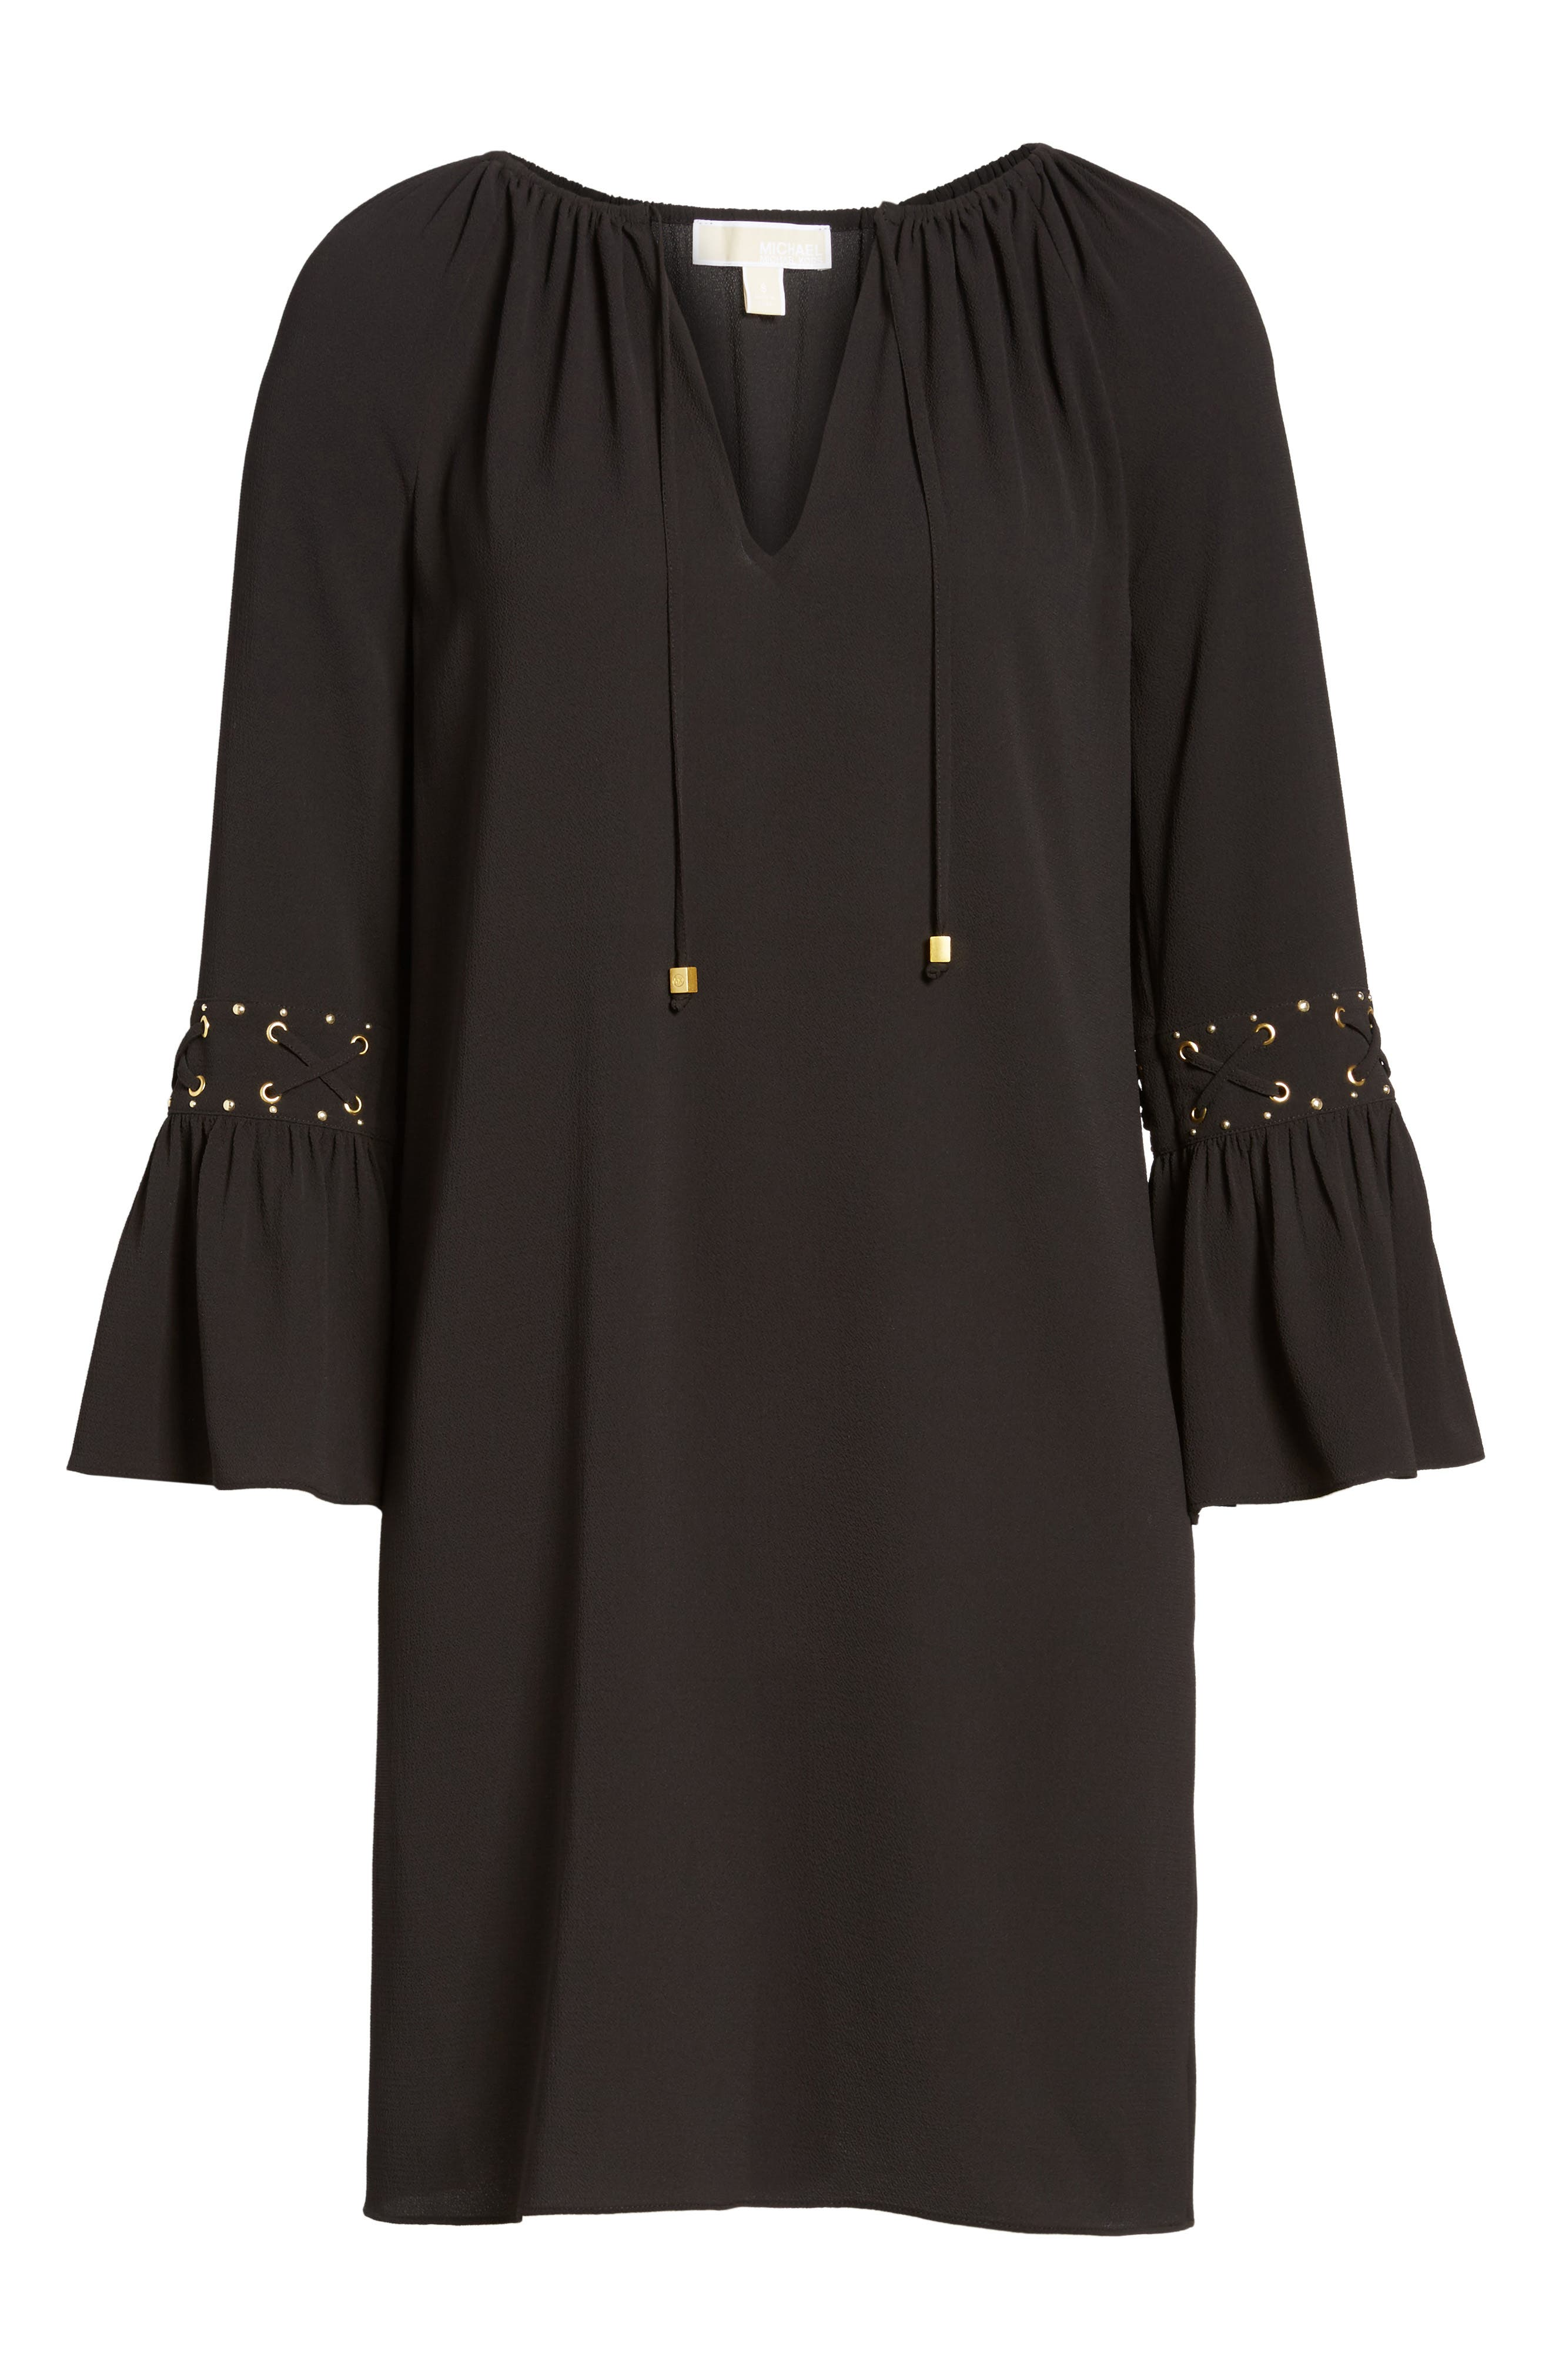 Lace-Up Sleeve Dress,                             Alternate thumbnail 6, color,                             001